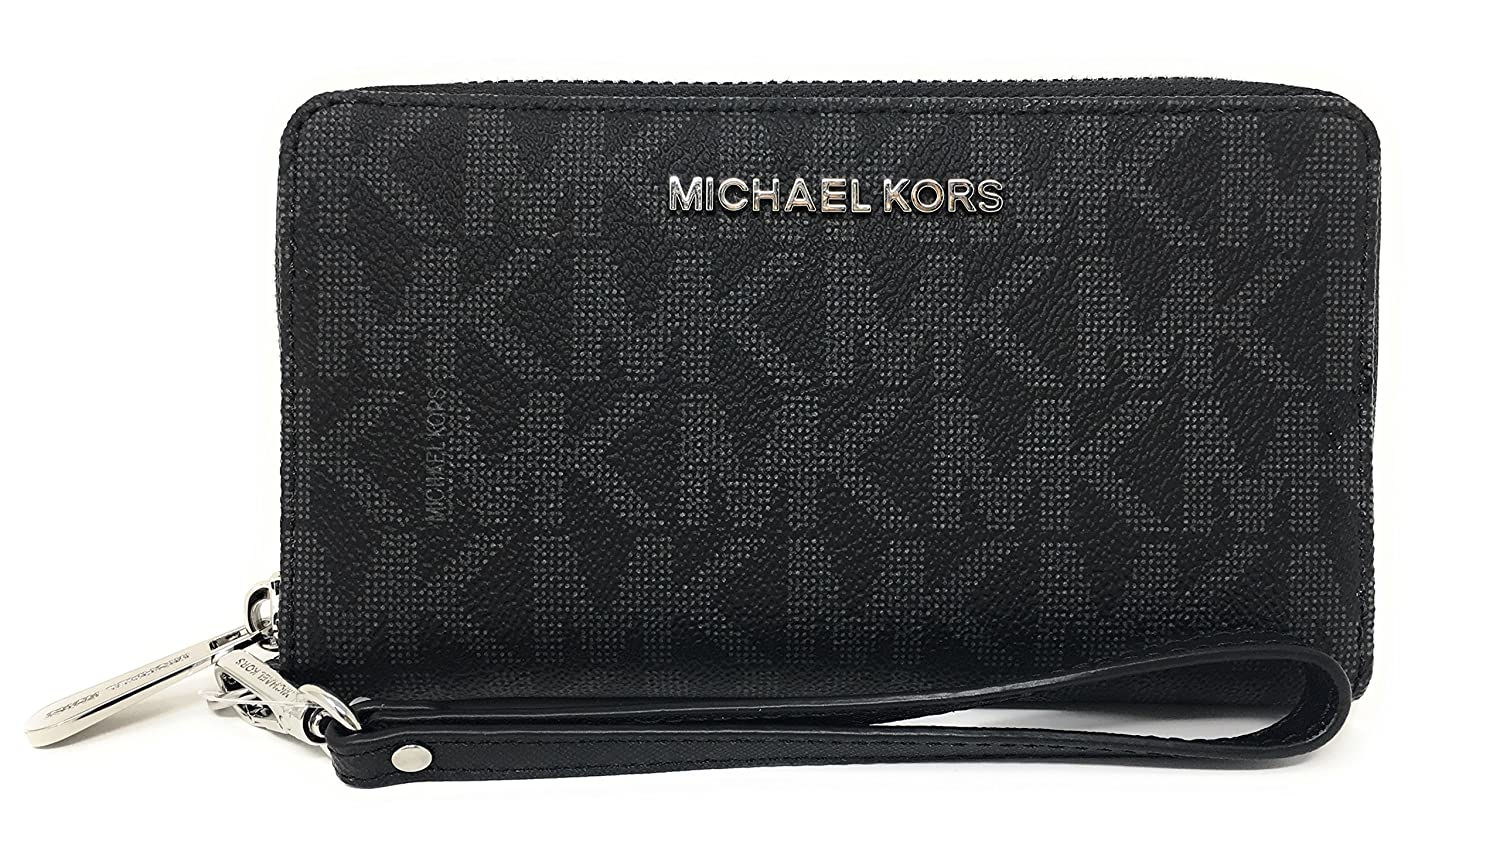 5913c4ef7ce3ab Top13: Michael Kors Jet Set Travel Large Flat Multifunction Phone Case  Wristlet